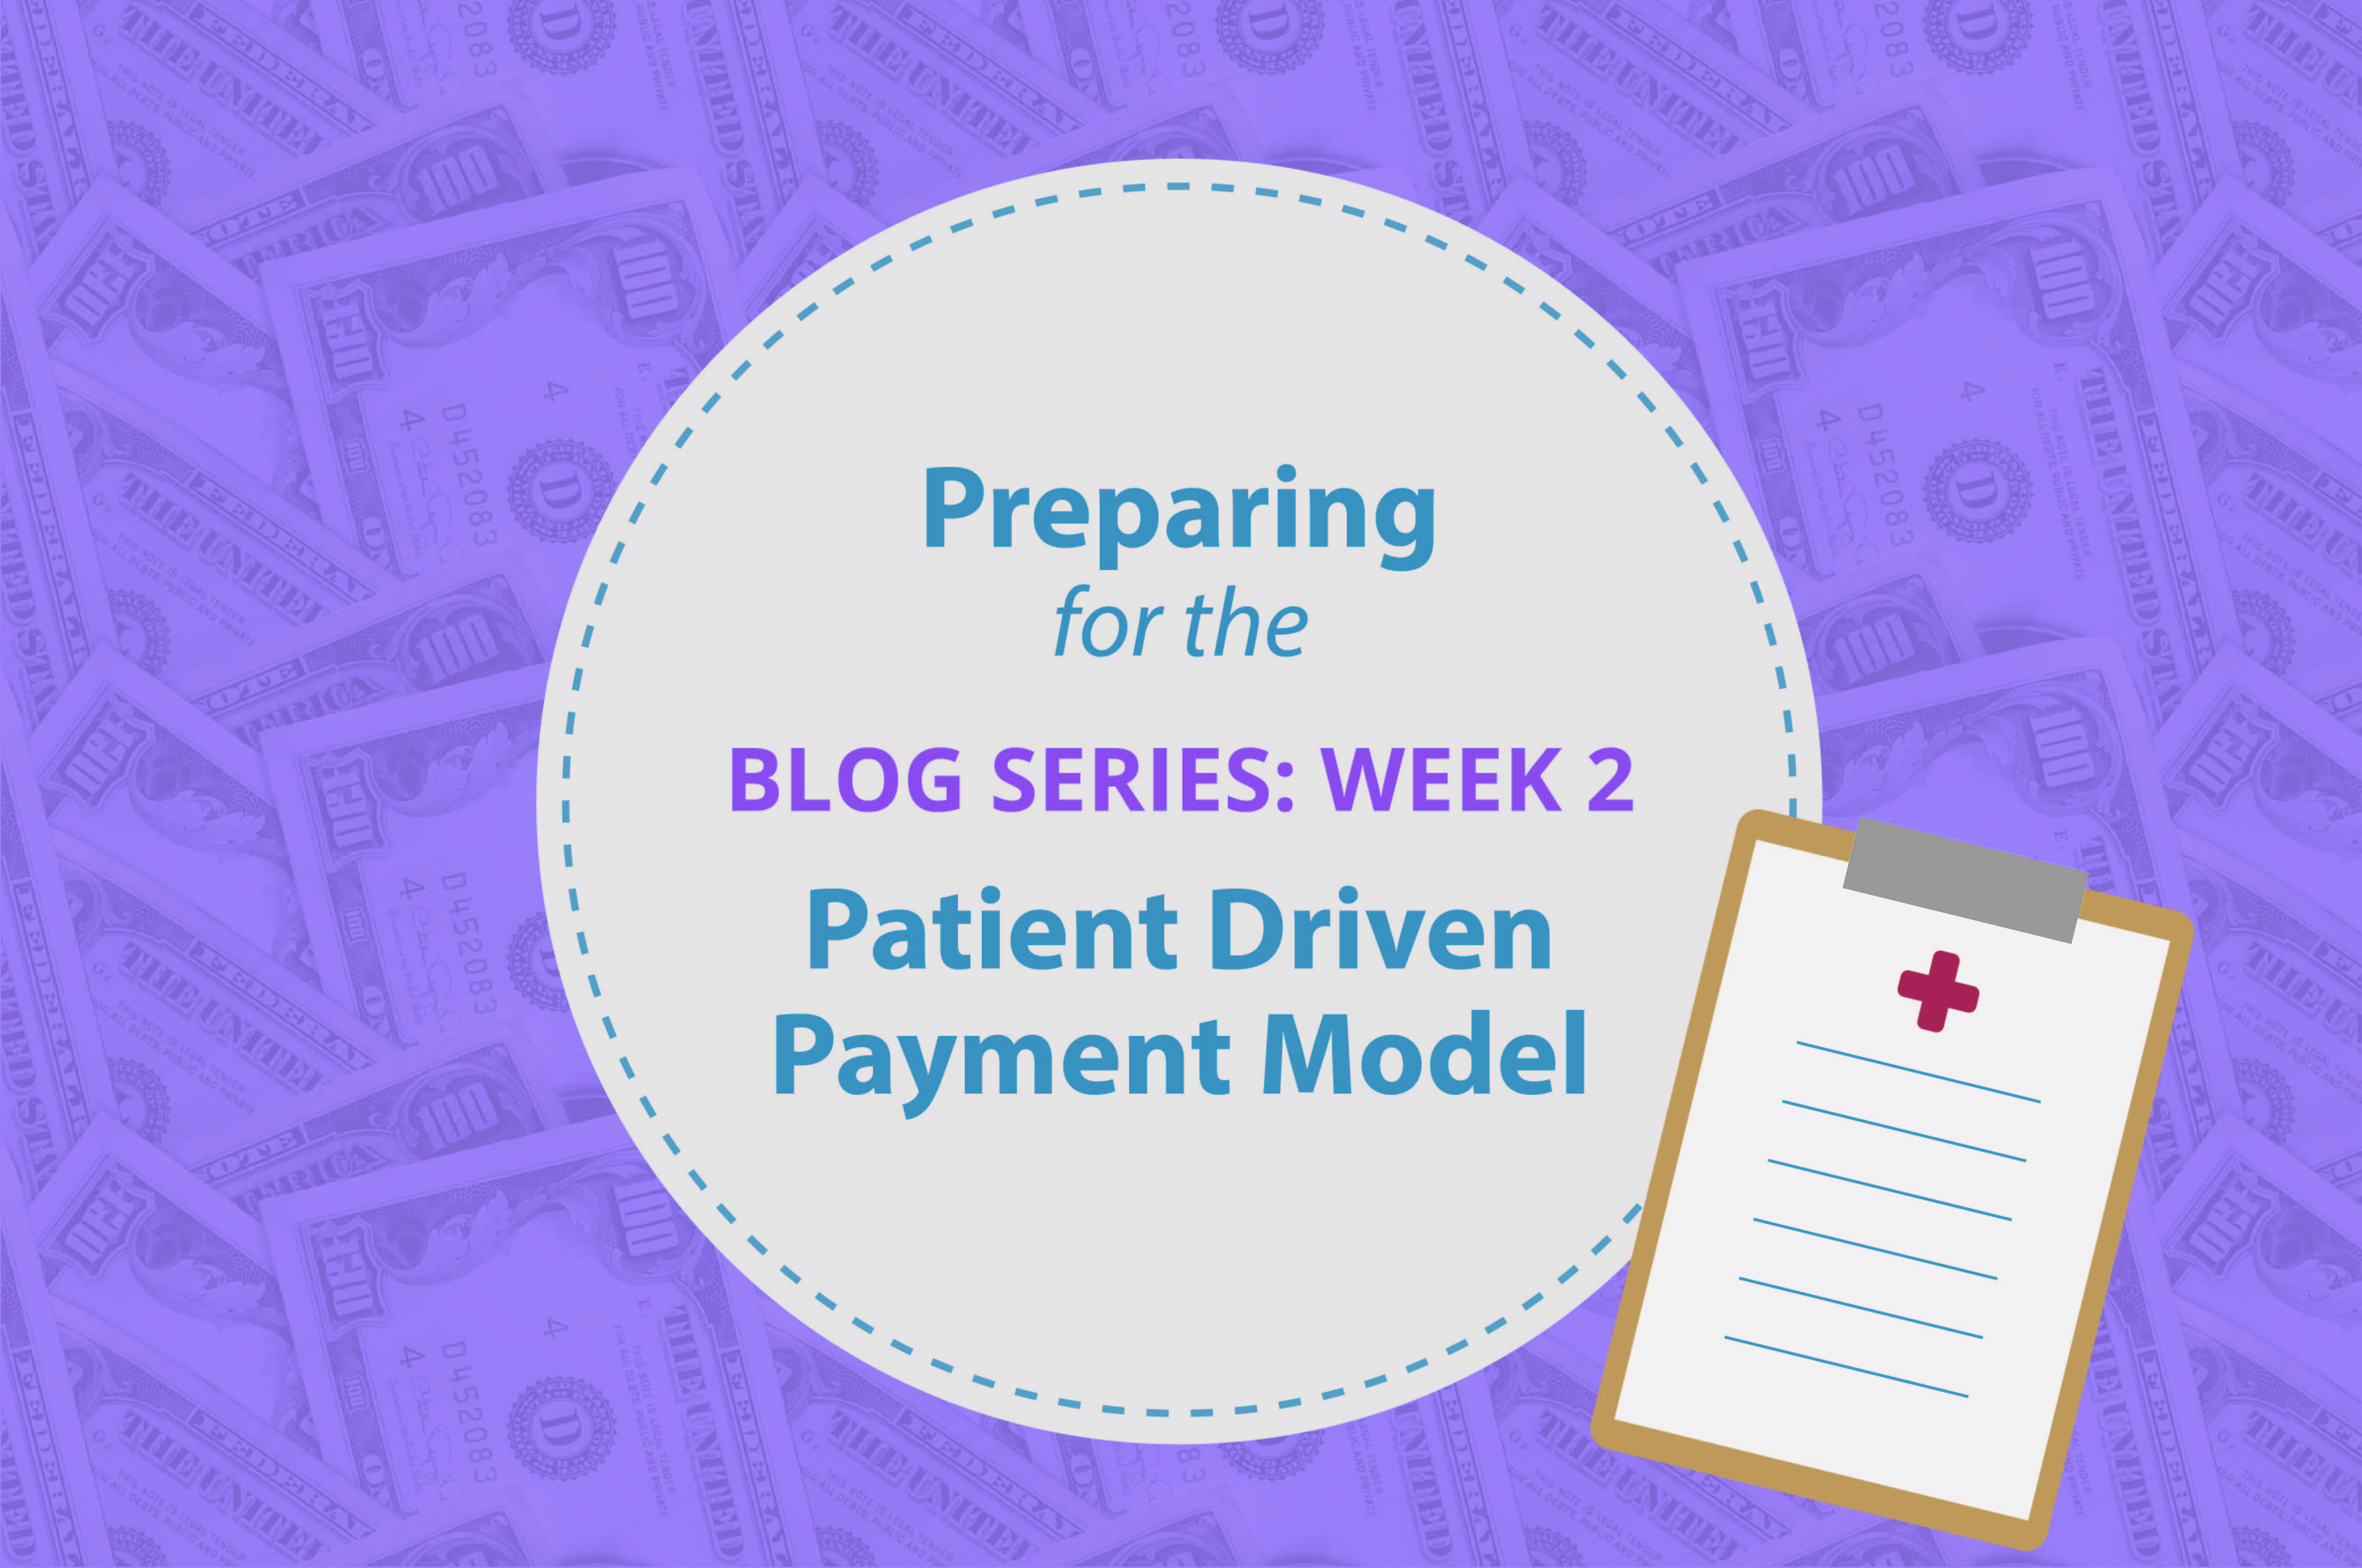 [Blog Series] Preparing for the Patient Driven Payment Model (PDPM): Week 2